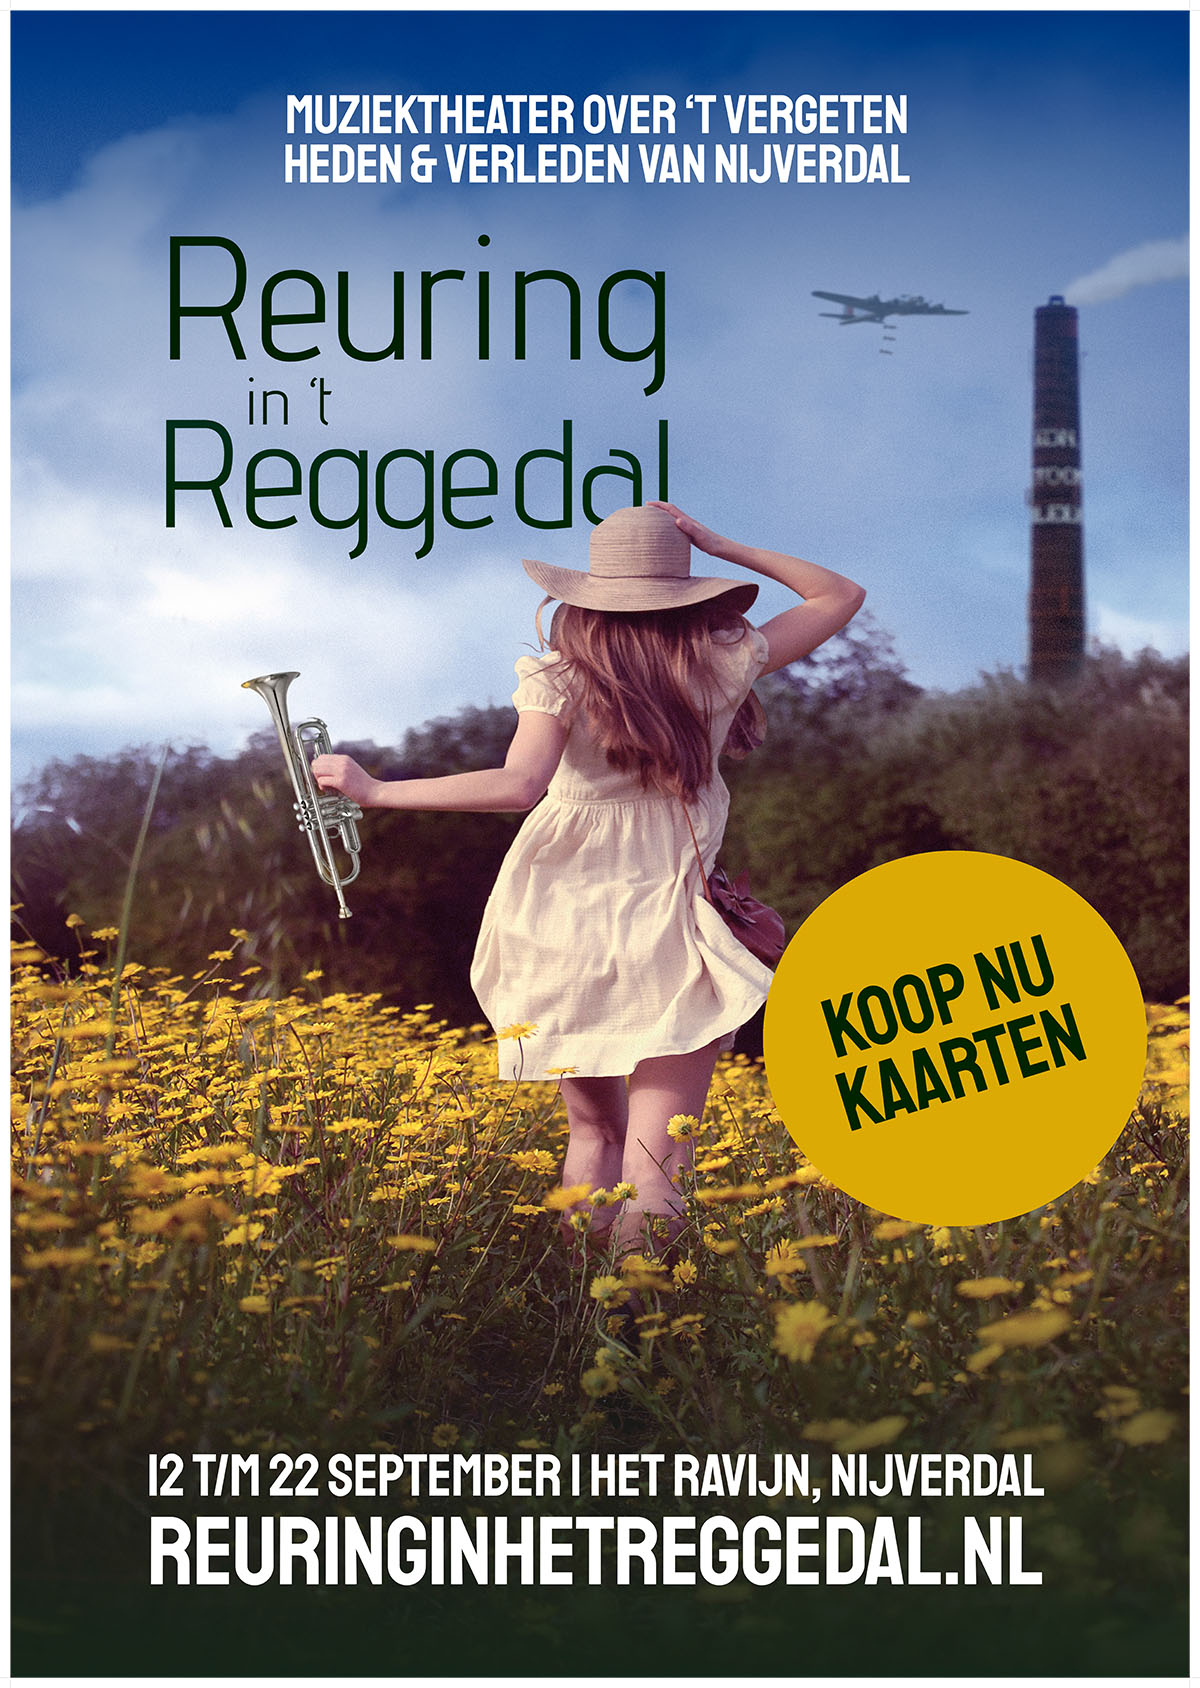 Reuring in het Reggedal tot 22 september